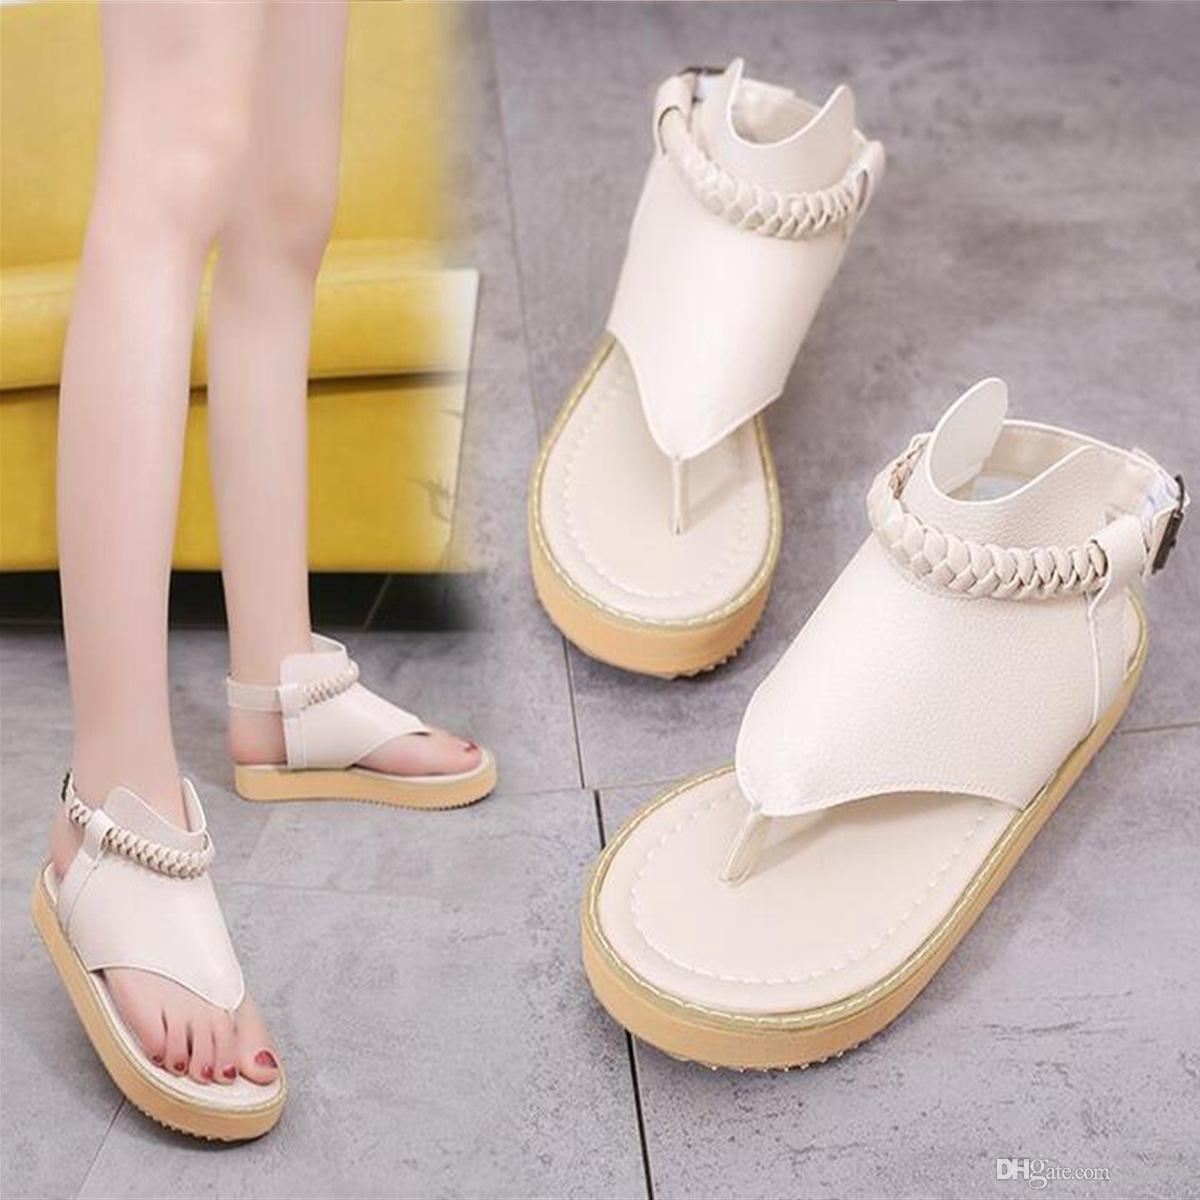 a71808aeaaaa Women S Sandals New Rome Style All Match Thickening Bottom Buckle Flip  Flops Sandals Solid Color Ladies Summer Shoes White  Black Beige Grey Black  Wedges ...